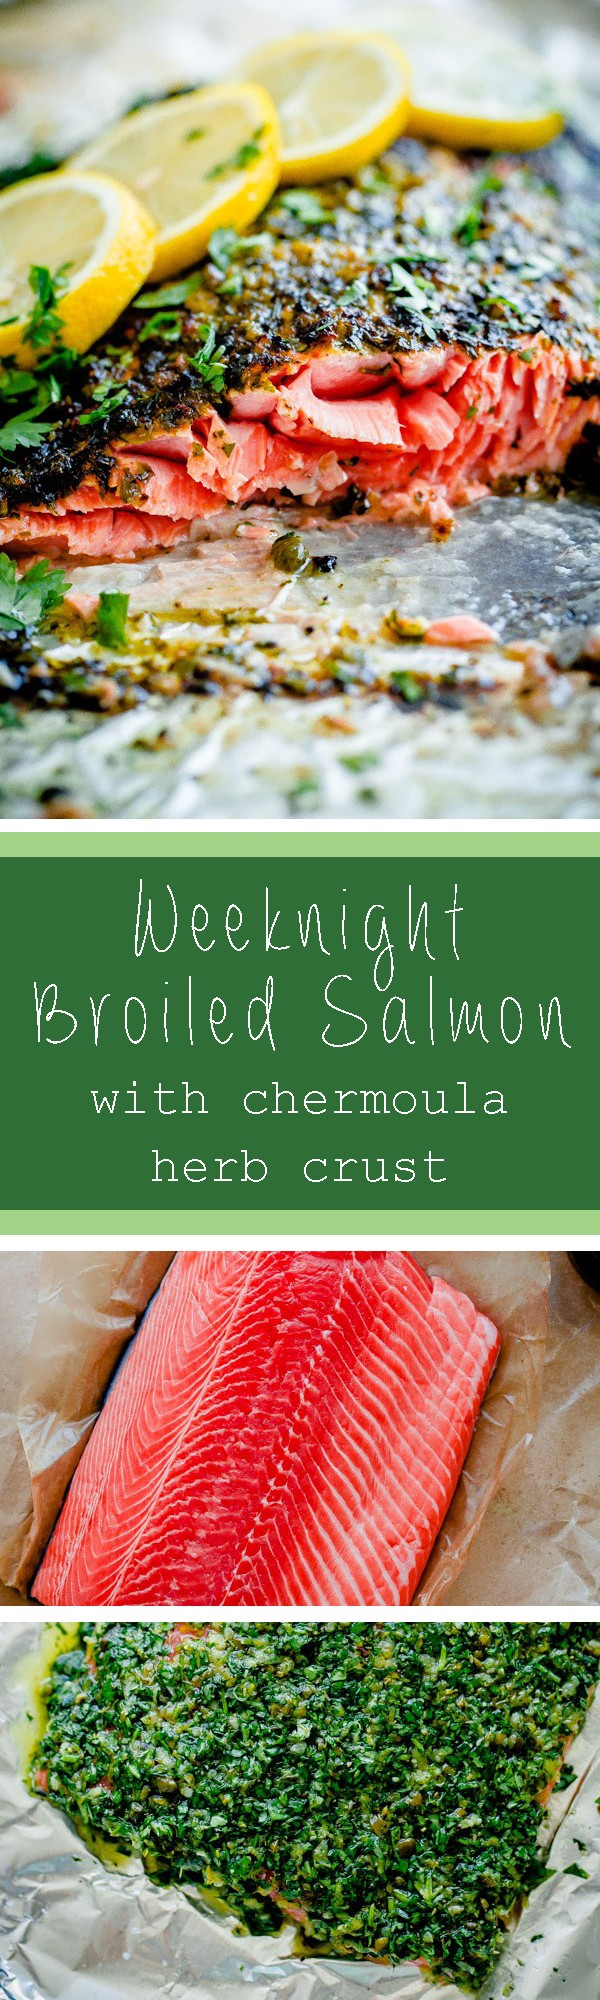 Weeknight Broiled Salmon with Chermoula Herb Crust. Easy, delicious salmon recipe that can be prepared in prepped and cooked in less than 20 minutes!